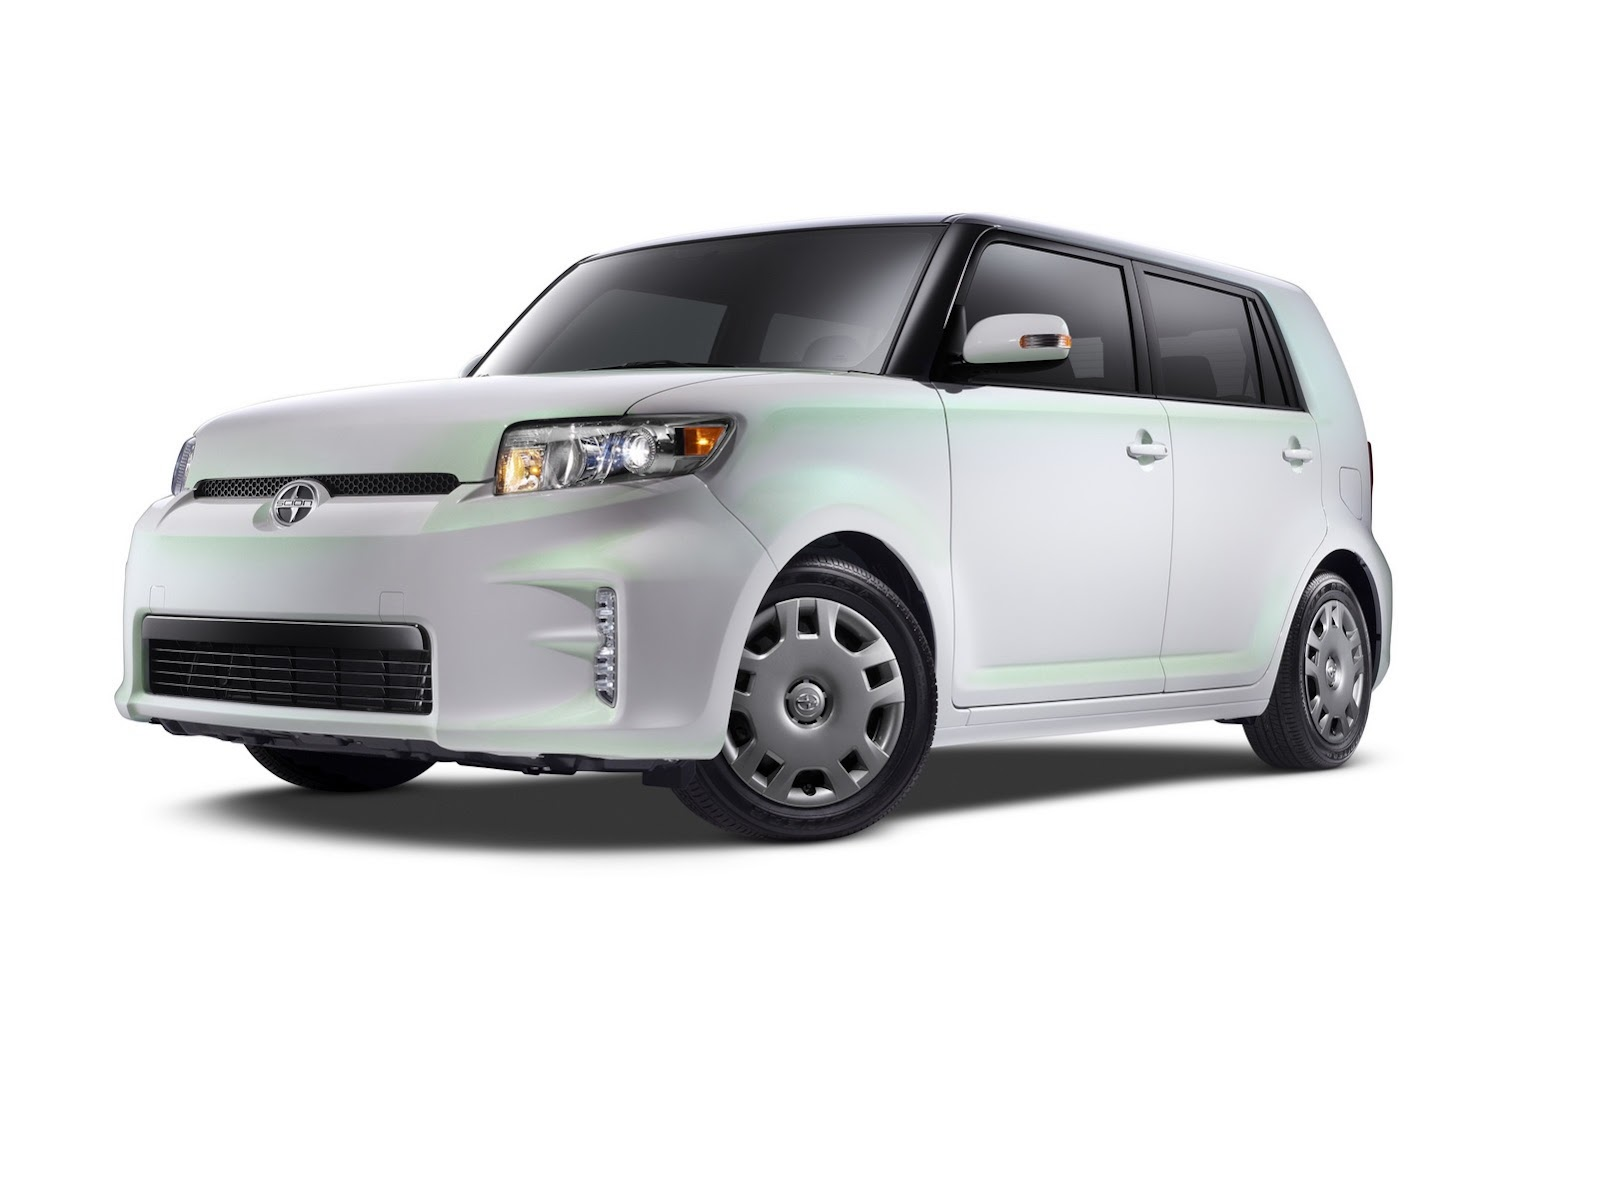 Scion Xb Release Series 10 0 Infused With Techie Style Toyota